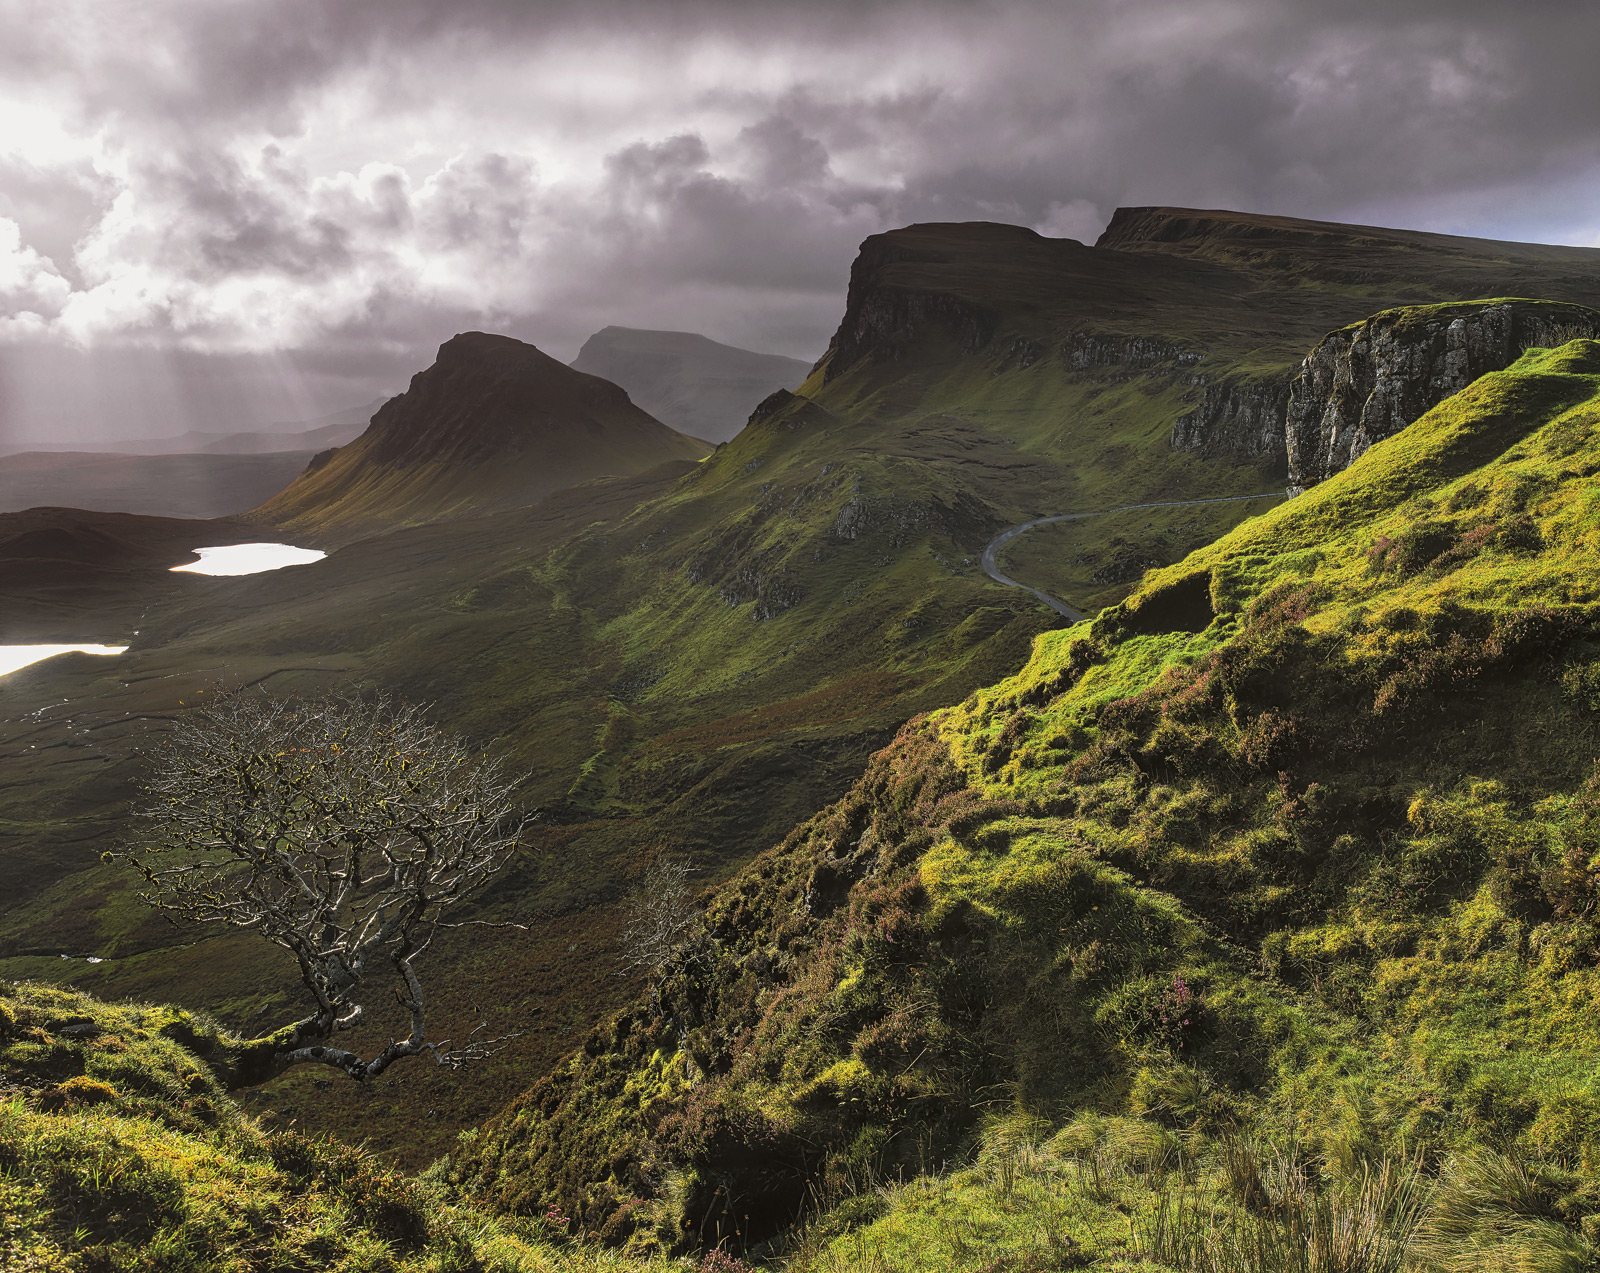 The slopes of the Trotternish ridge at the Quiraing on Skye are lit by a blazing beam of sunlight that scurries across the hills...